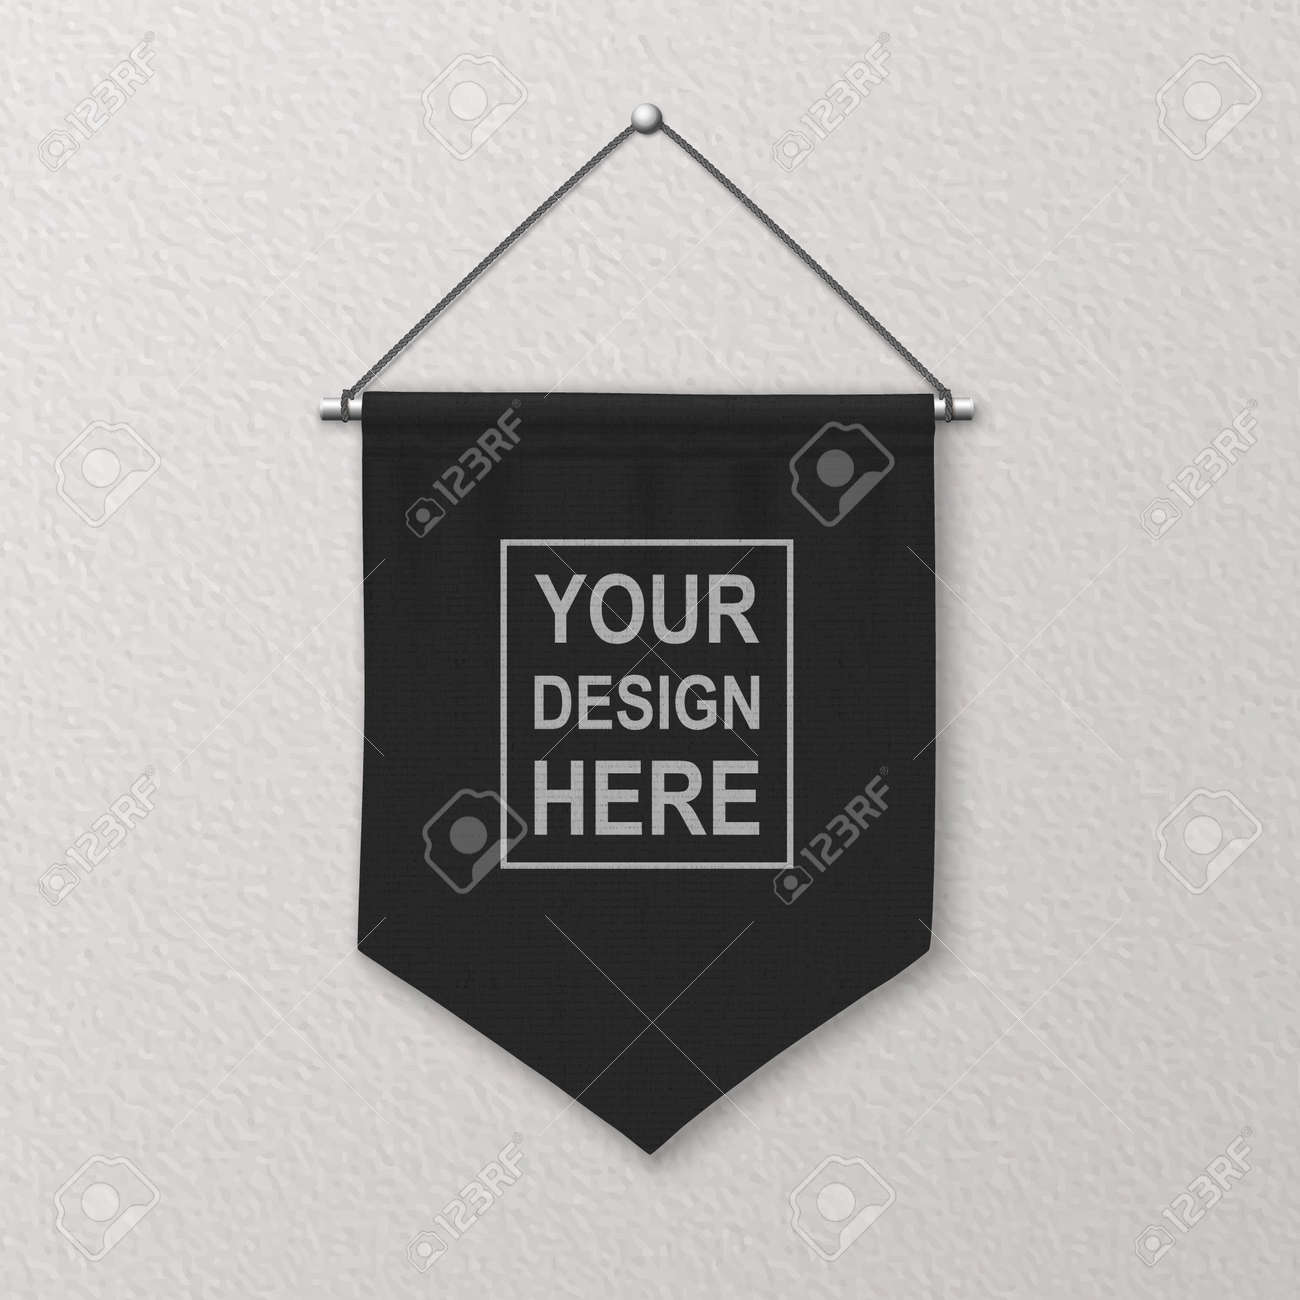 Vector 3d Realistic Blank Black Pennant Wall Hanging, Design Template, Mockup. Linen Pennant Closeup on Textured Wall. Empty Fabric Flag, Advertising Canvas Banner - 173297892